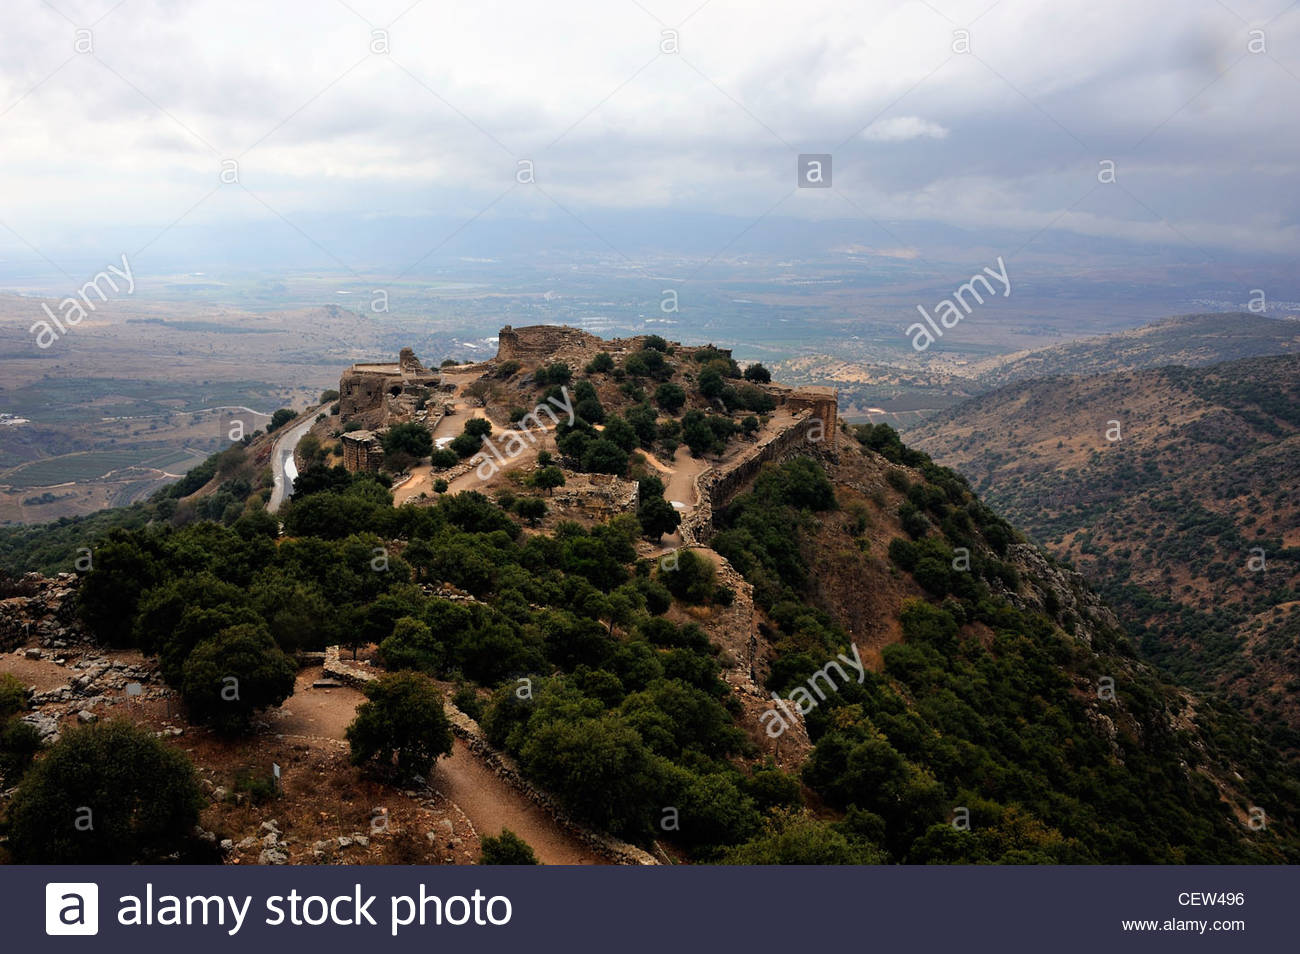 View Of The Nimrod Fortress From Mount Hermon On The Golan Heights.